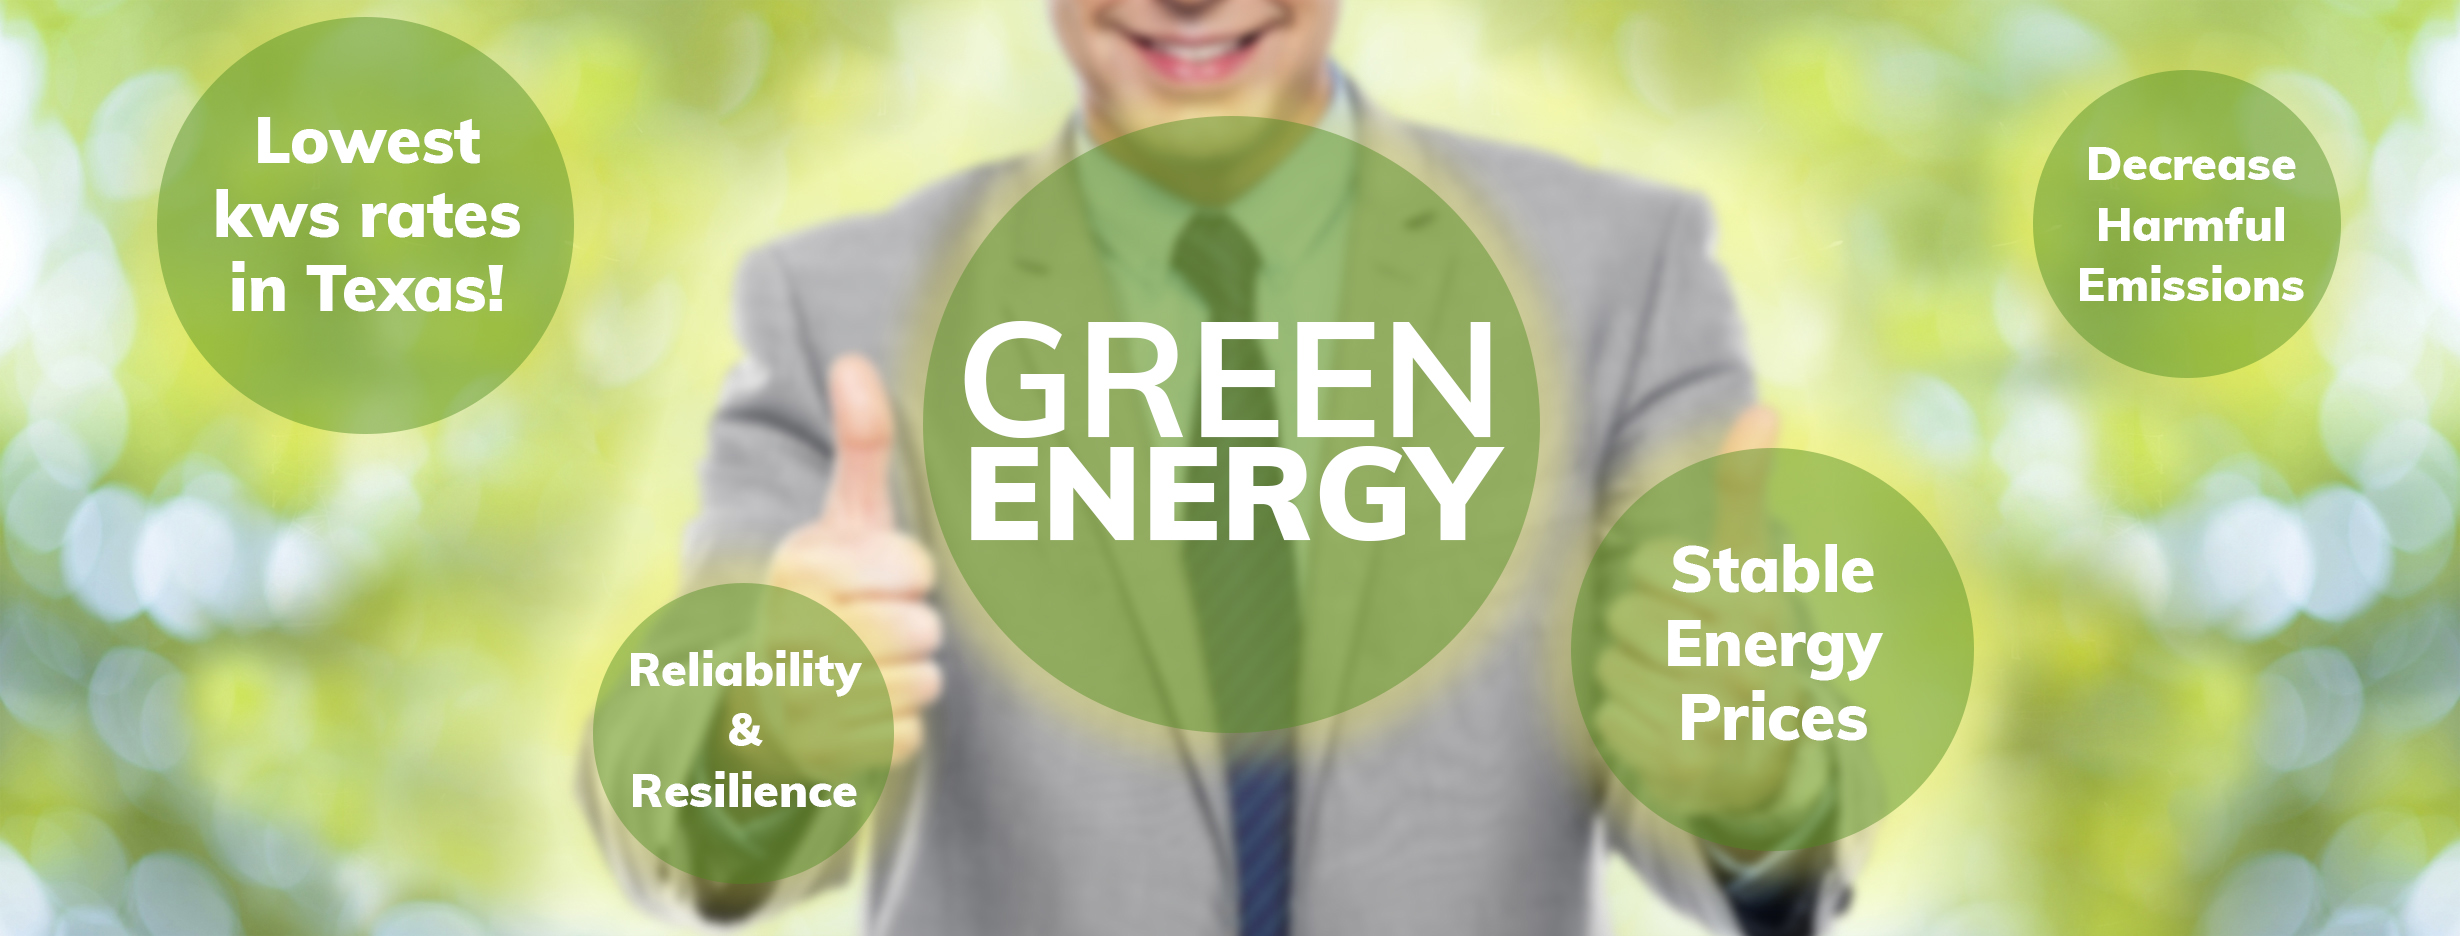 Green energy, Lowest kWs Rates in Texas, Low Honest Prices, Smart Energy Tools